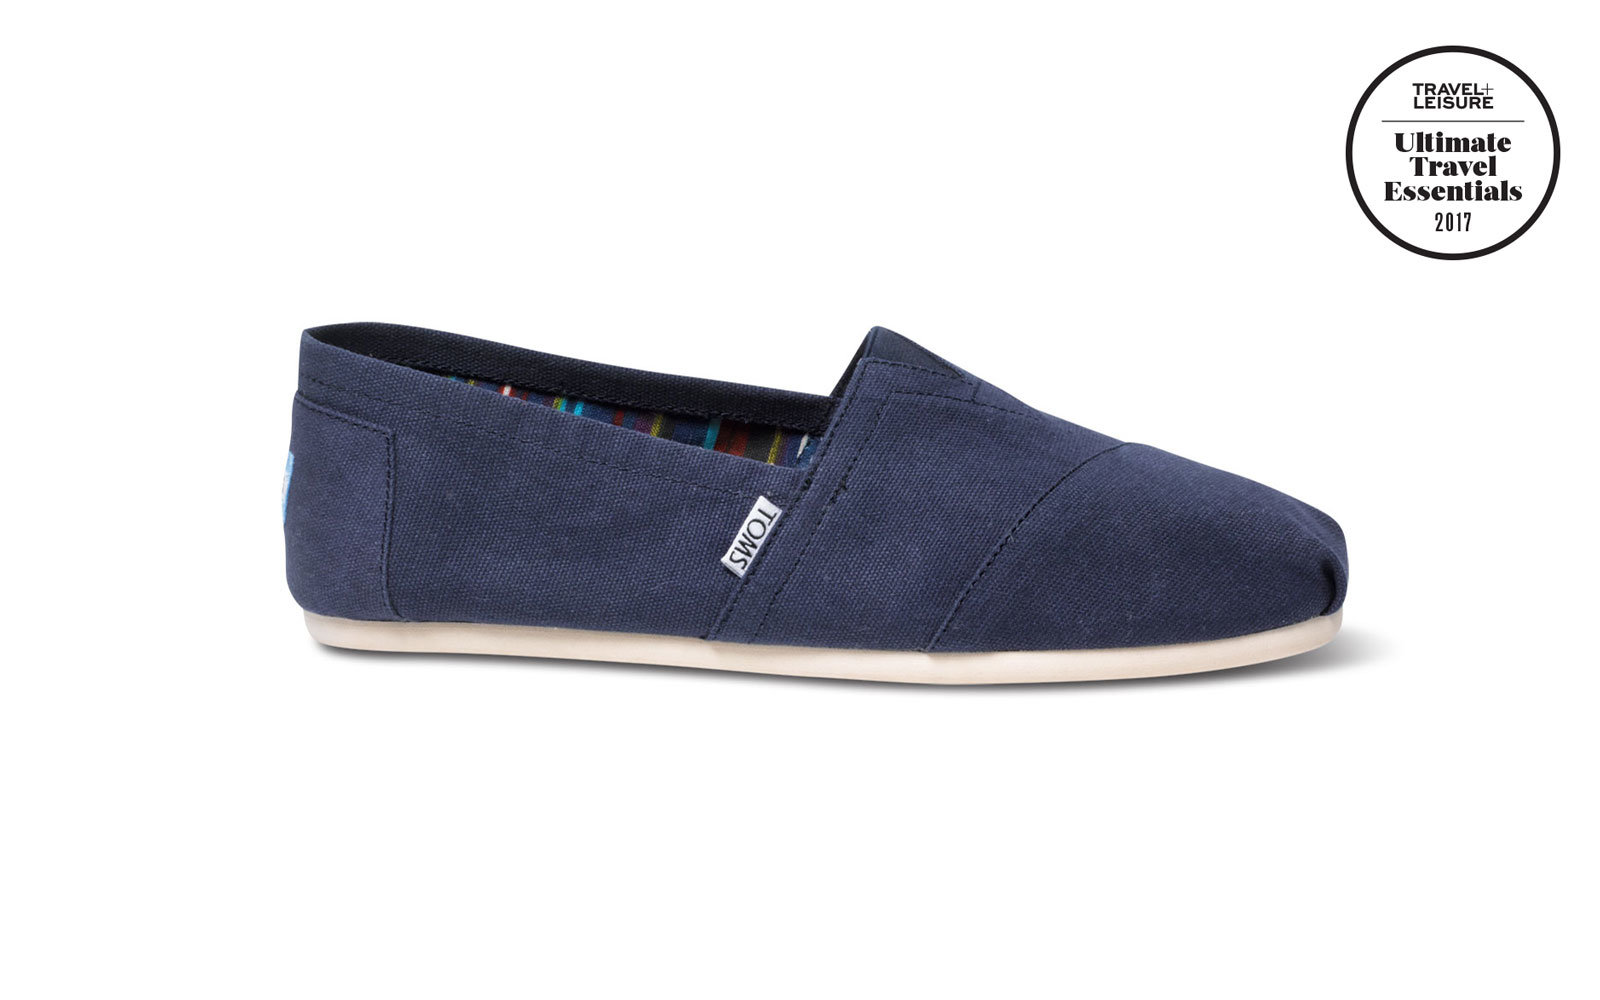 Men's Aloha Canvas Travel Comfort Slip On Shoes Blue